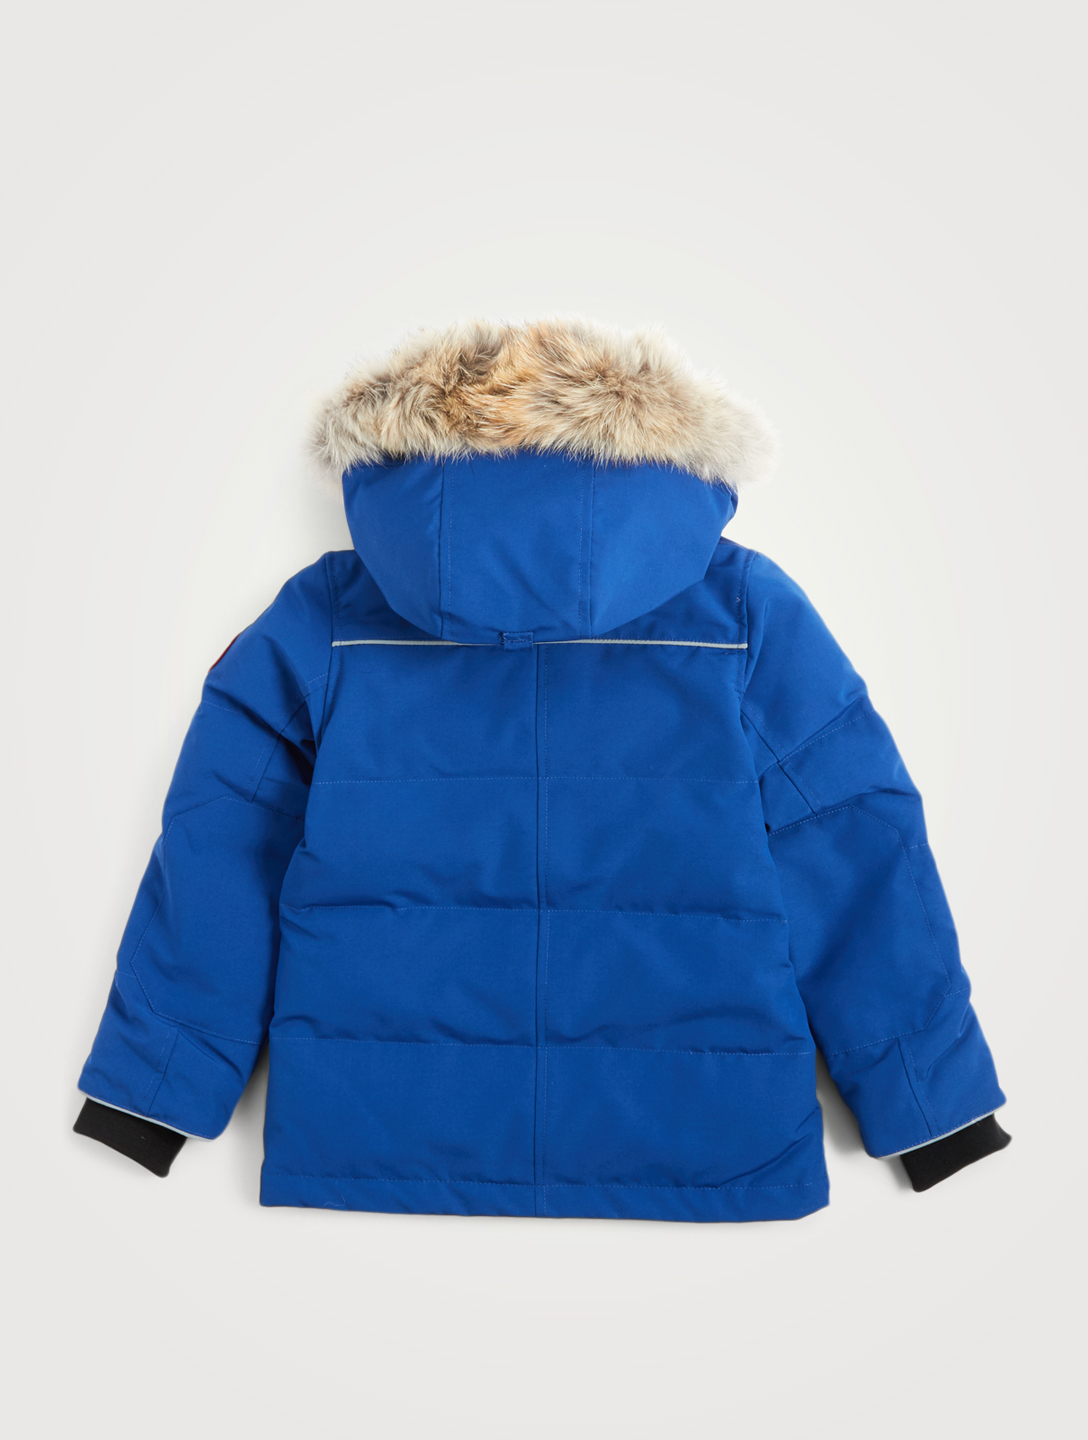 a03bb1bb5ec CANADA GOOSE Youth Eakin Down Parka With Fur | Holt Renfrew